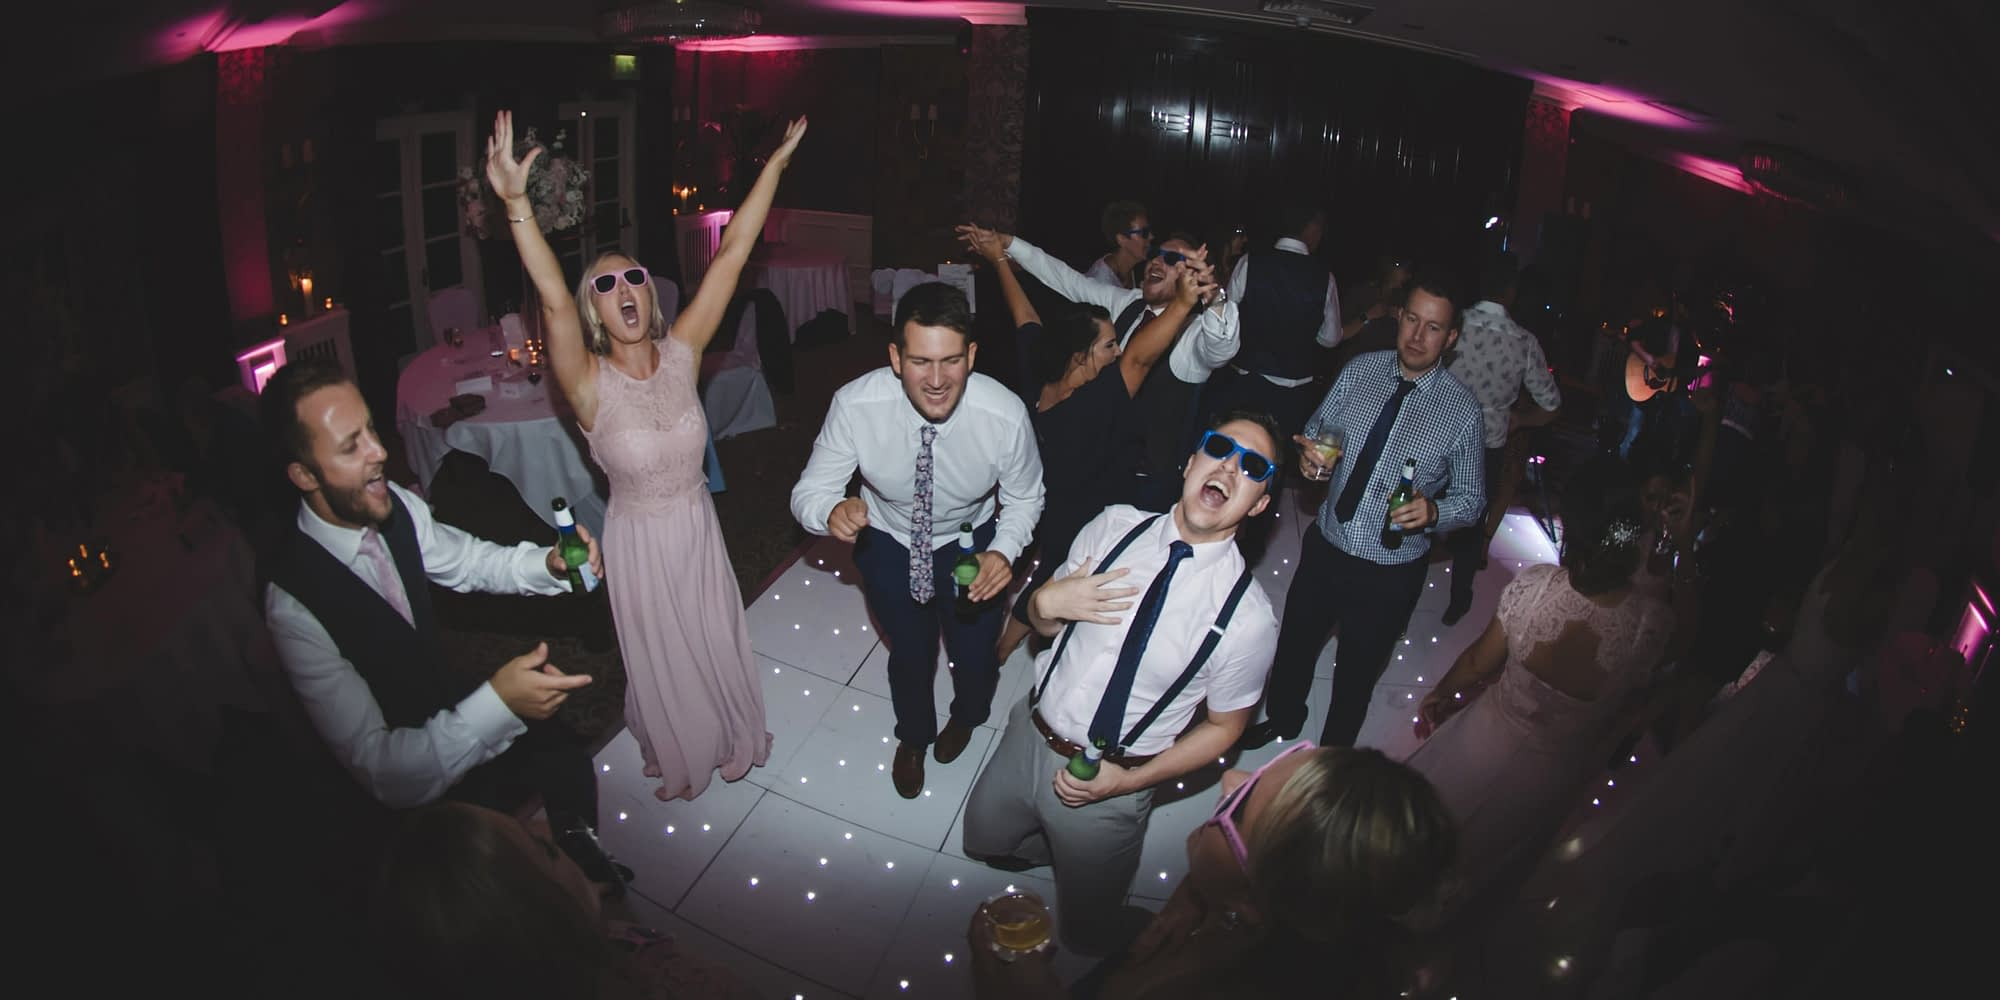 wedding guests dancing in the evening